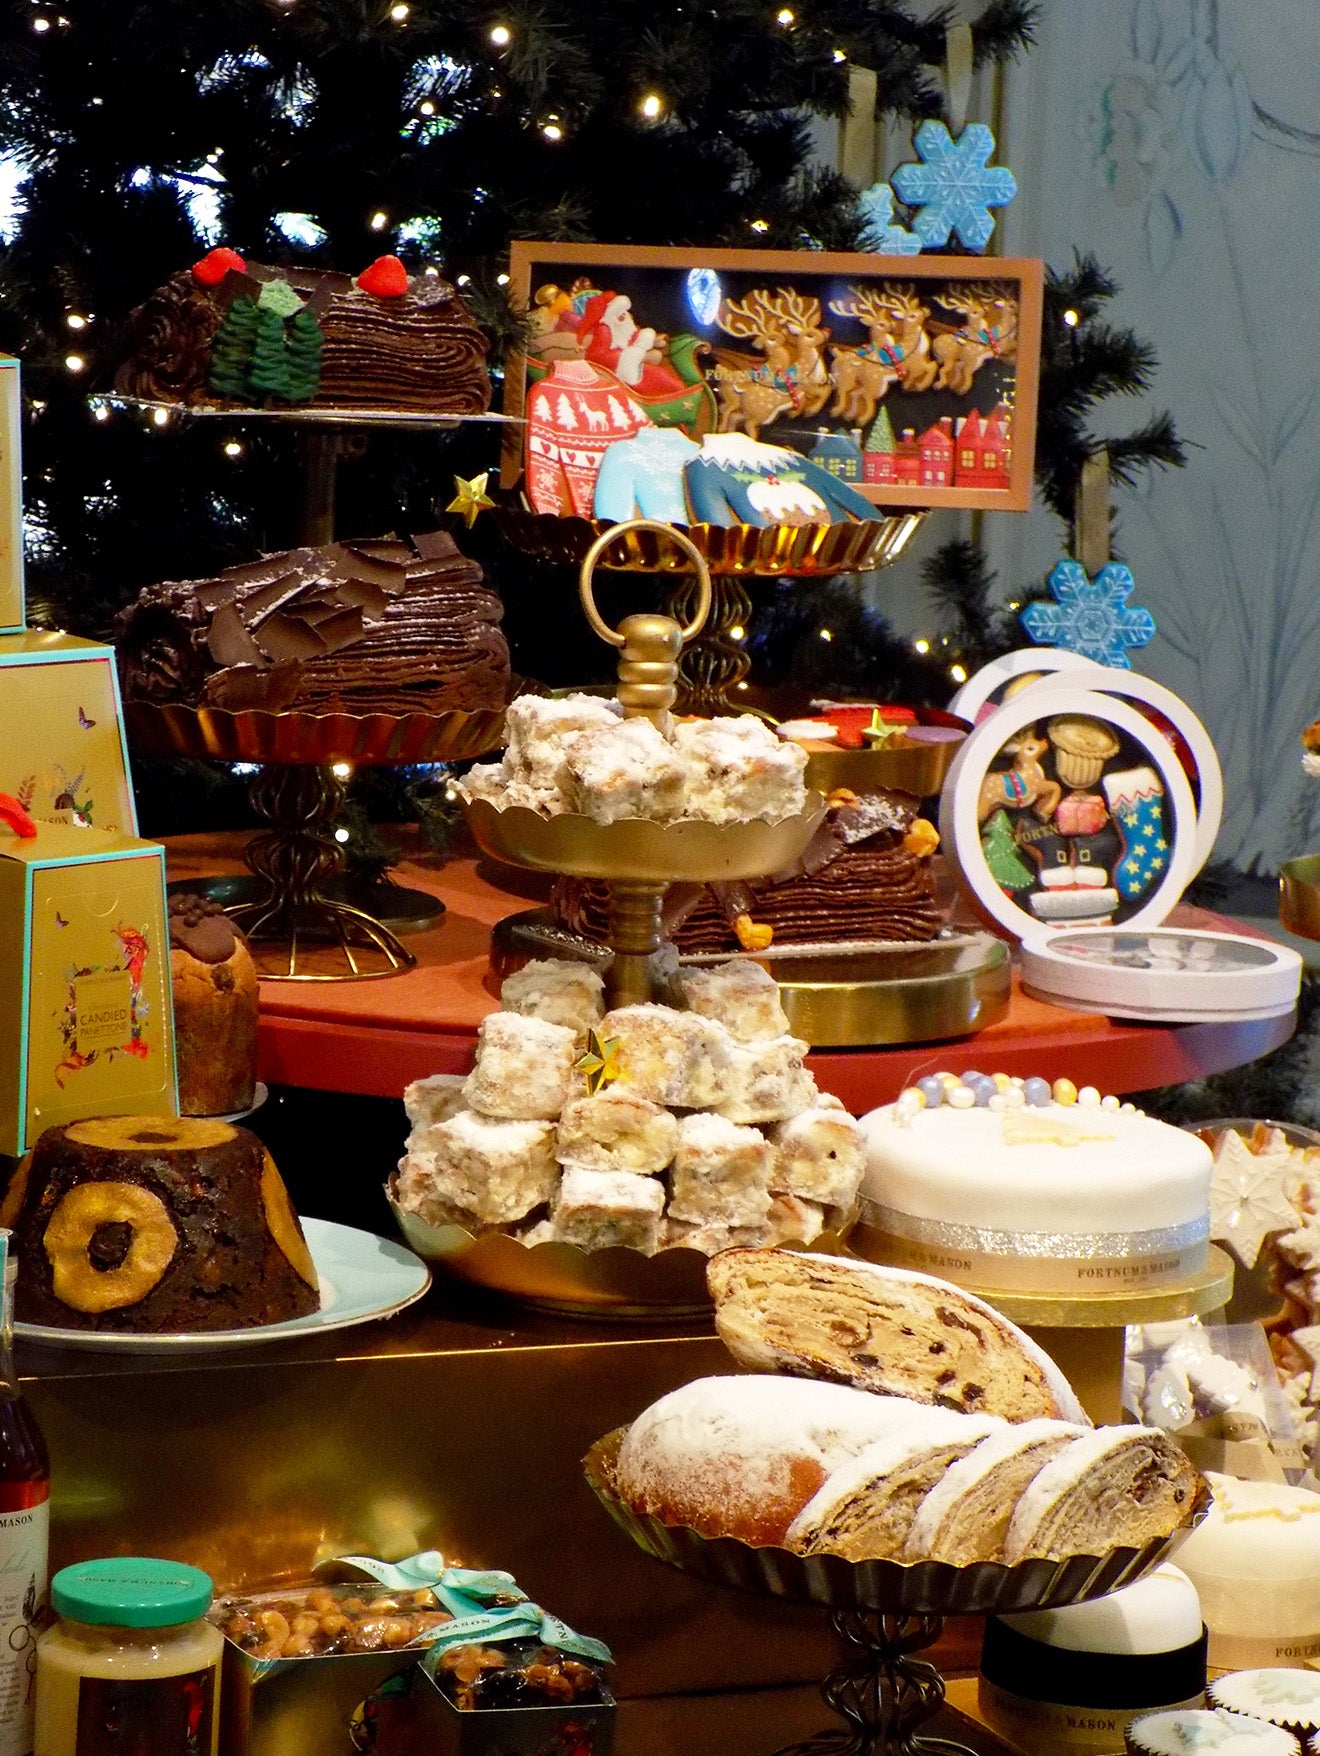 Fortnum & Mason Christmas food